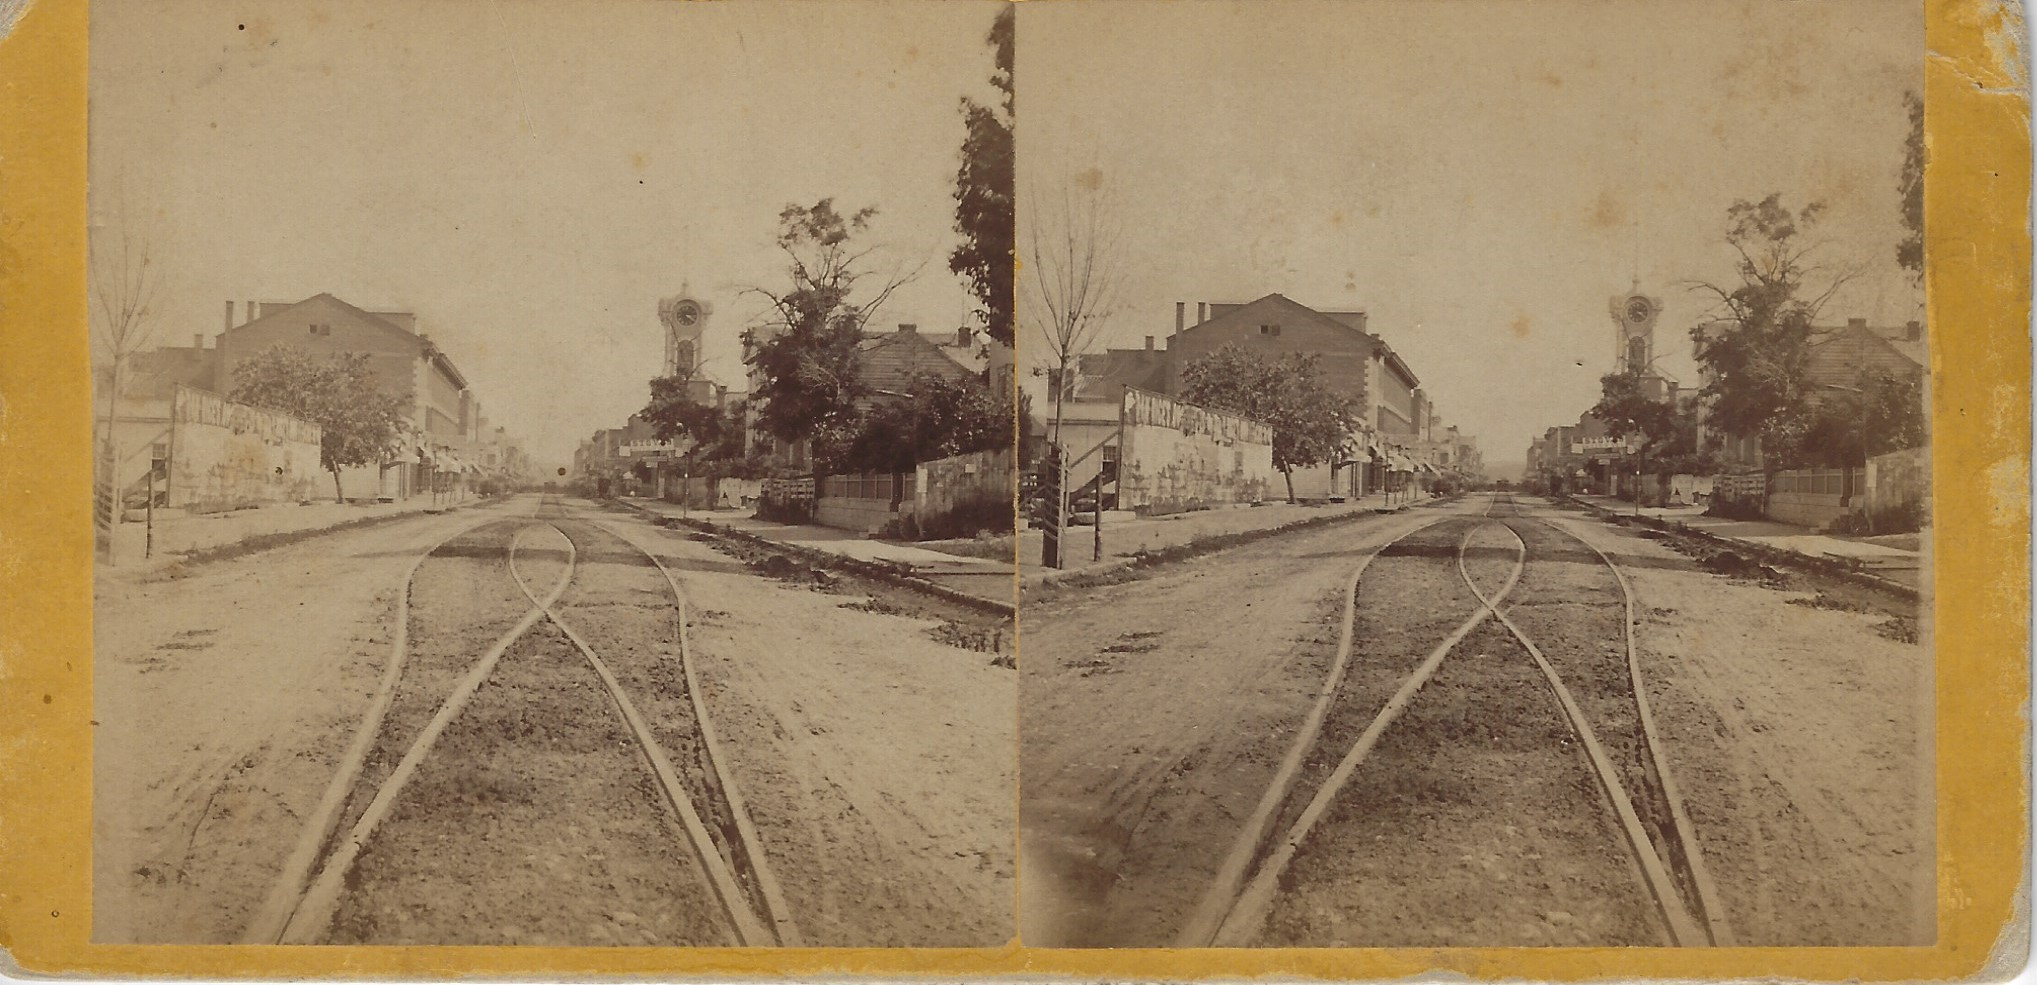 LJTP 100.222 - S. Root SMT - Main St. Looking South - c1869